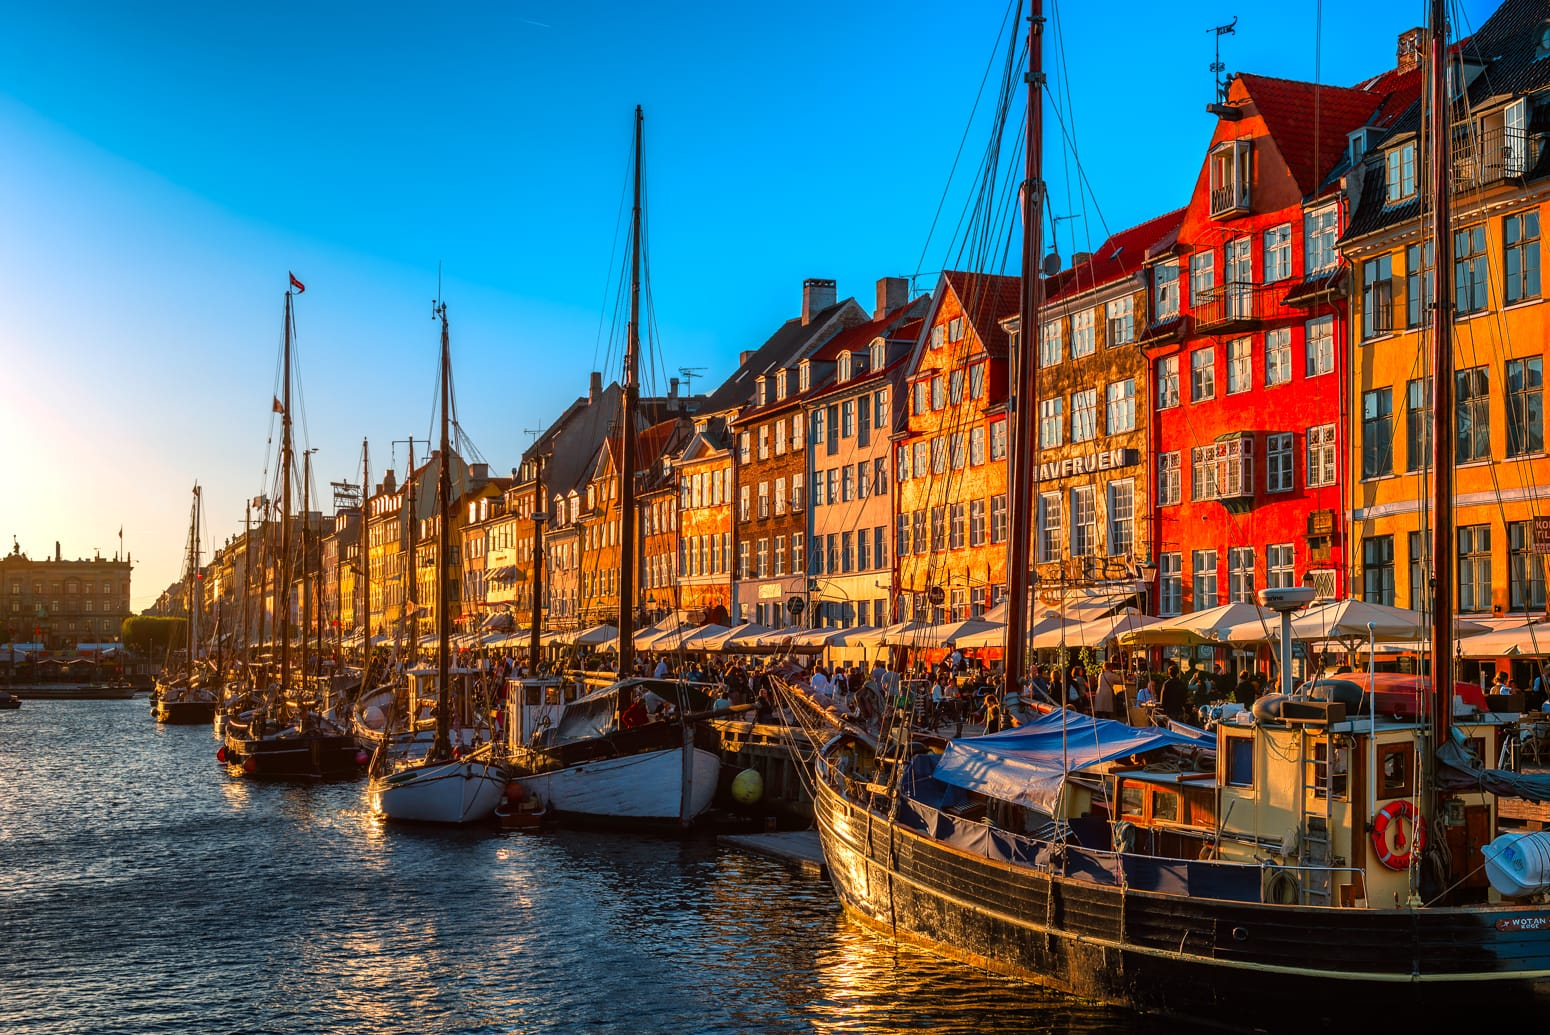 Nyhavn in Copenhagen, Denmark with colorful gabled houses at sunset.